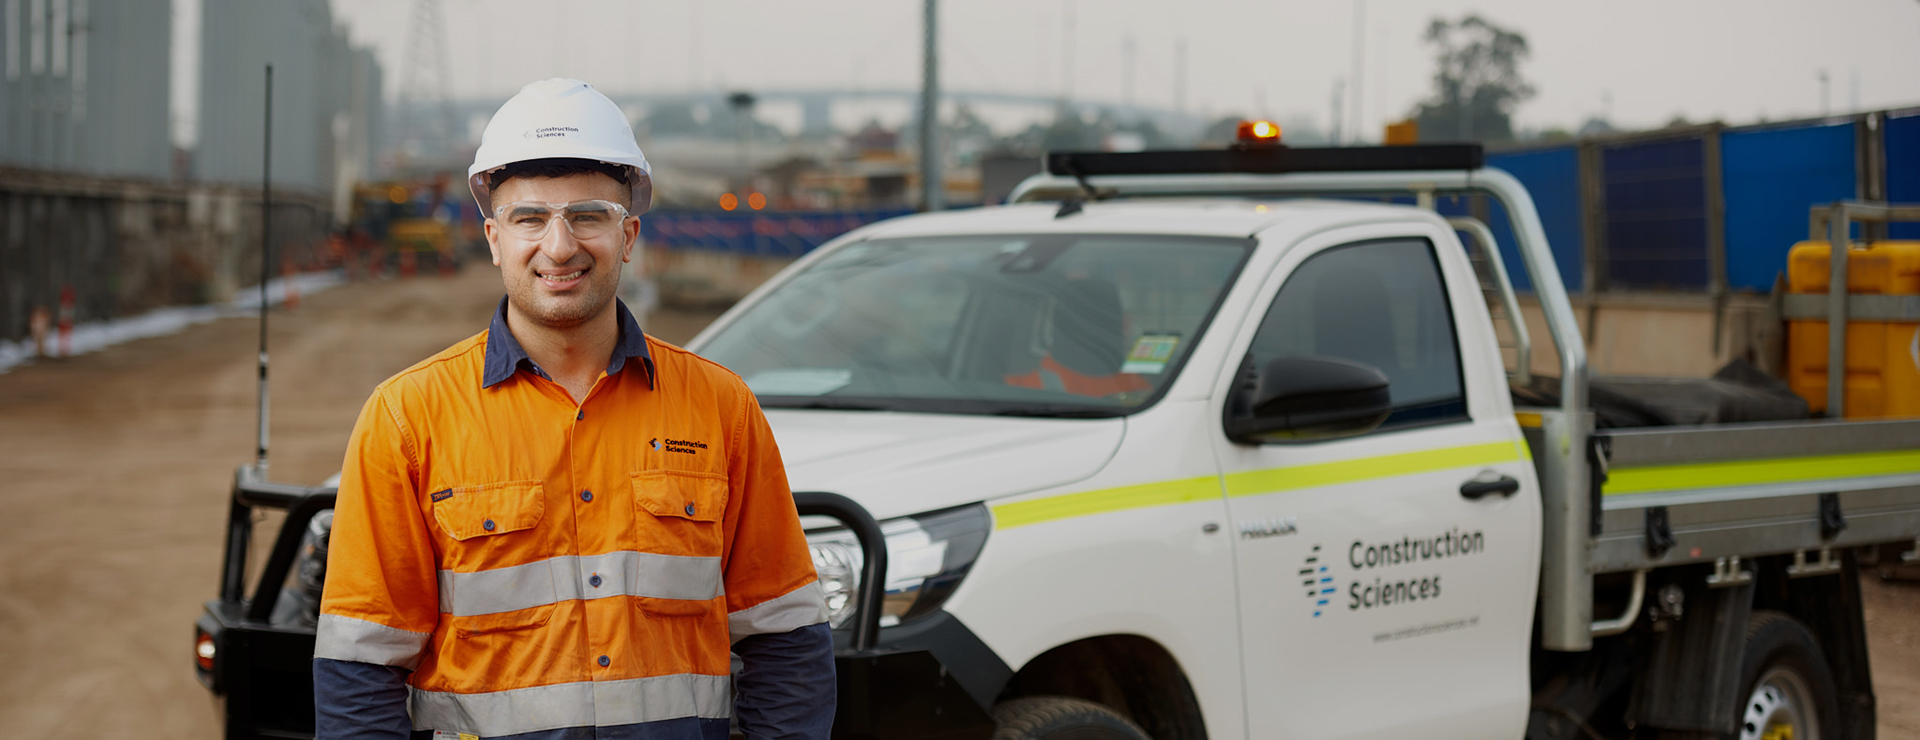 man with ute and hard hat